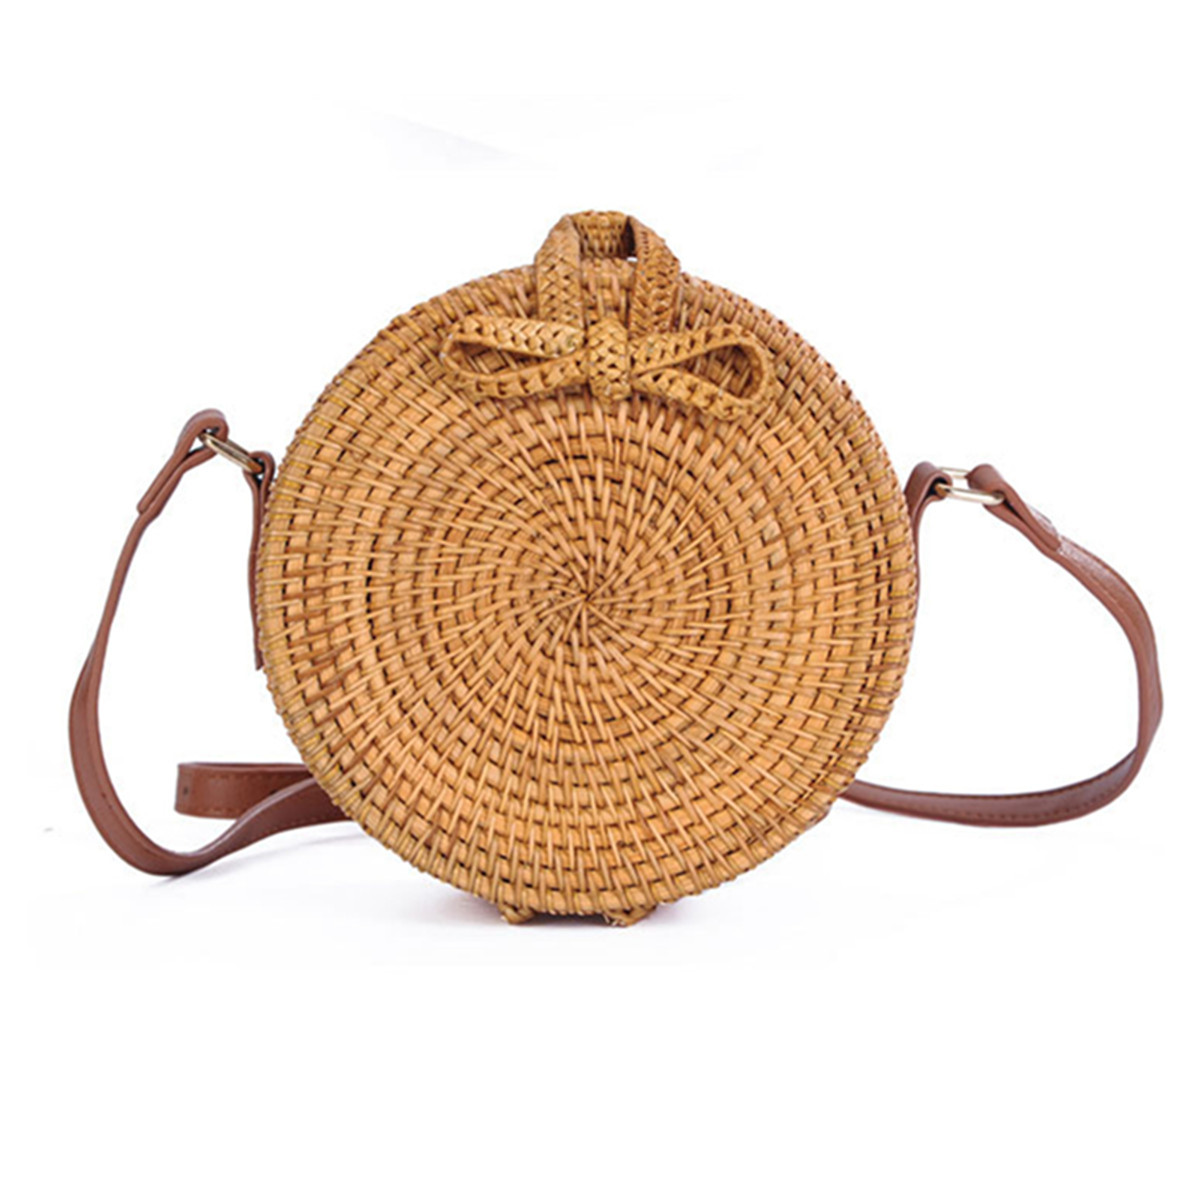 Hand Woven Bag Round Rattan Straw Bags Bohemia Beach Bag